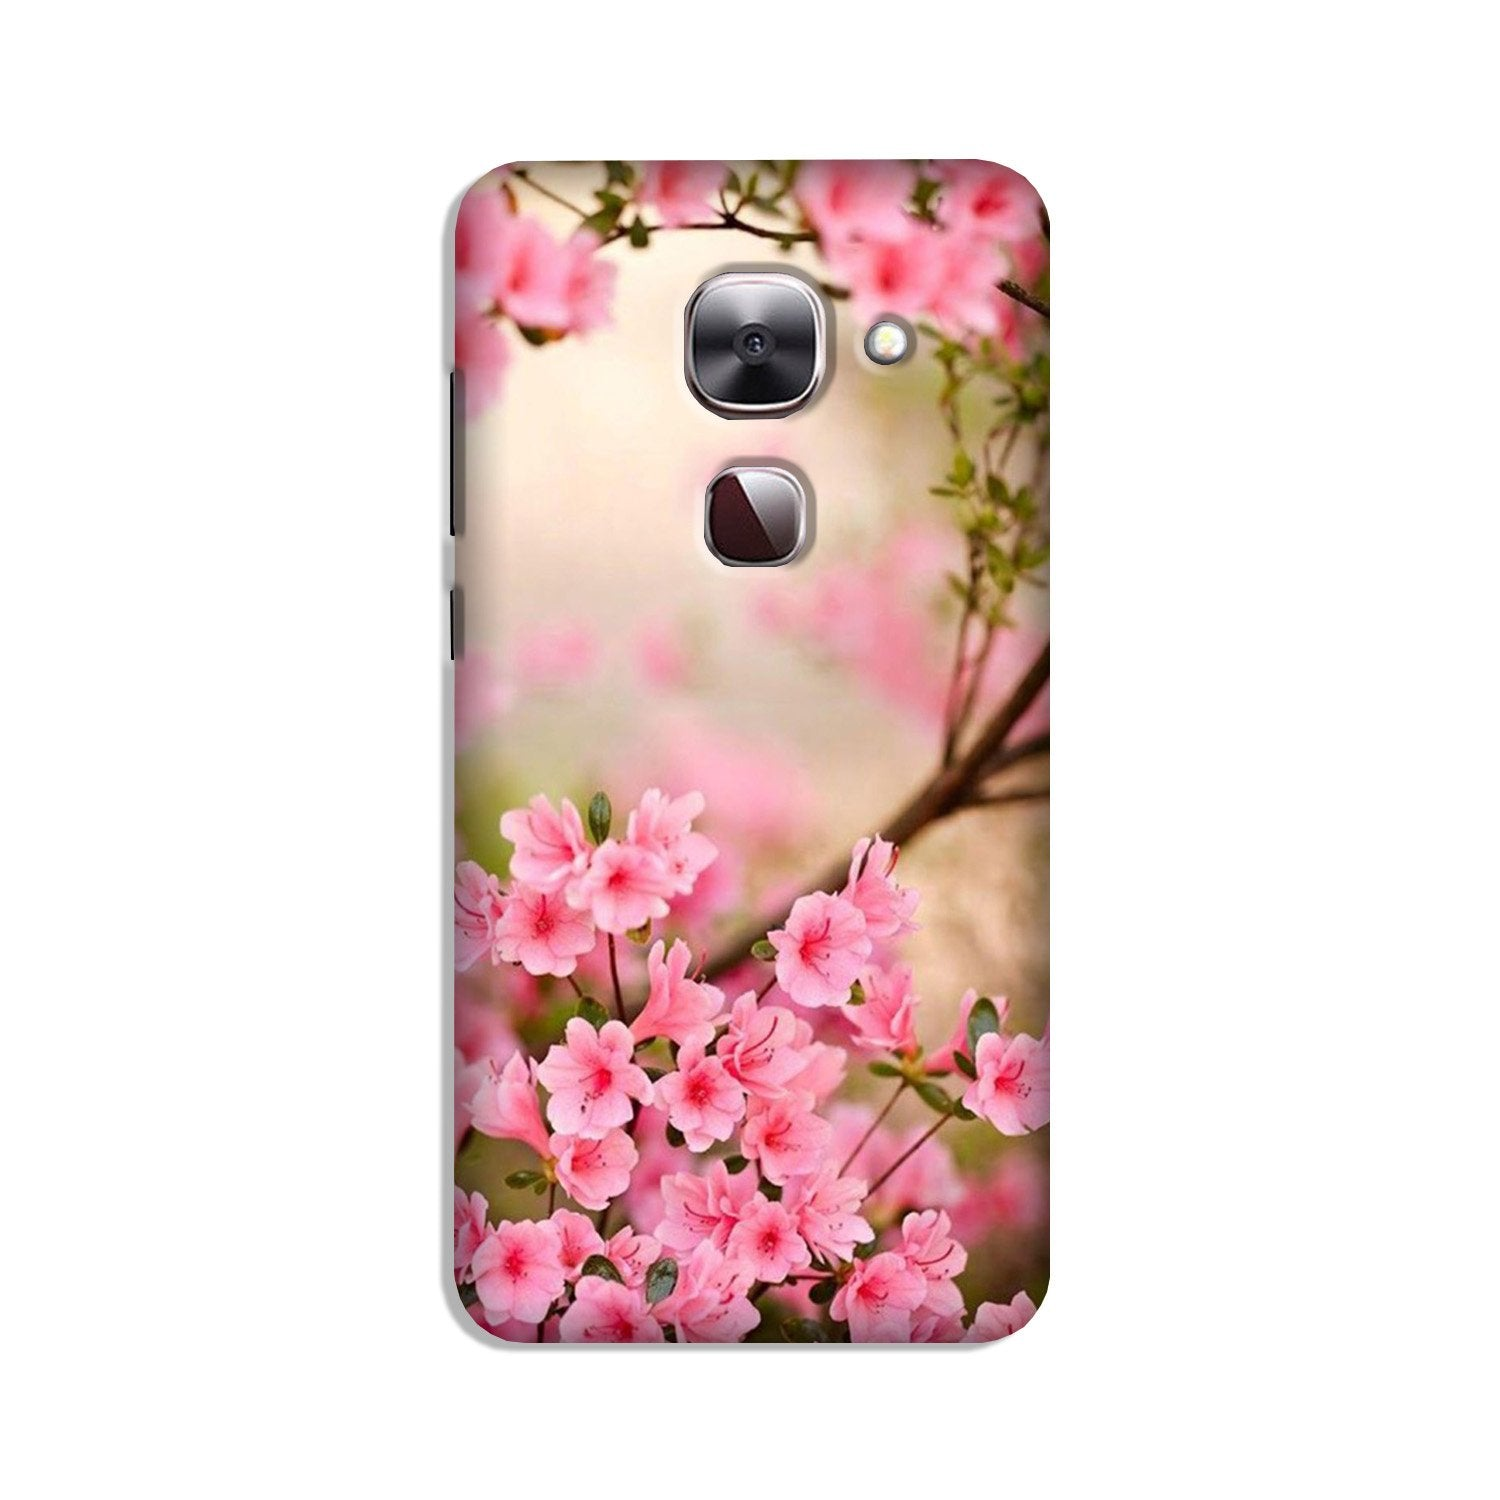 Pink flowers Case for LeEco le 2s